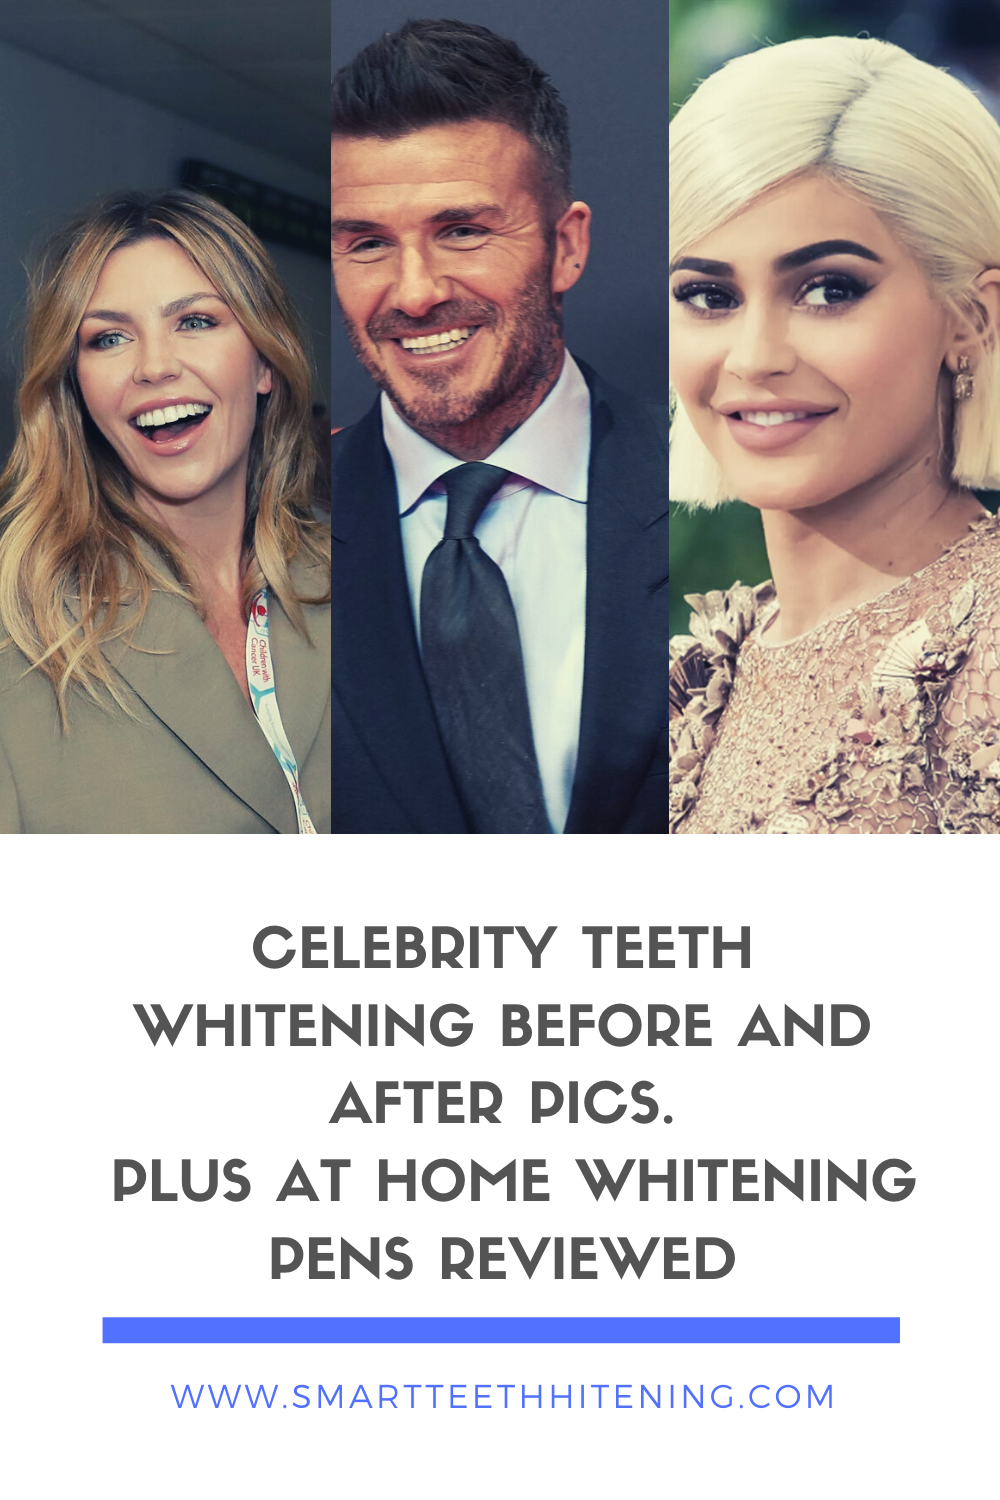 Celebrity Teeth Whitening Kylie Jenner To David Beckham How Can You Get The Same Look Smart Teeth Whitening